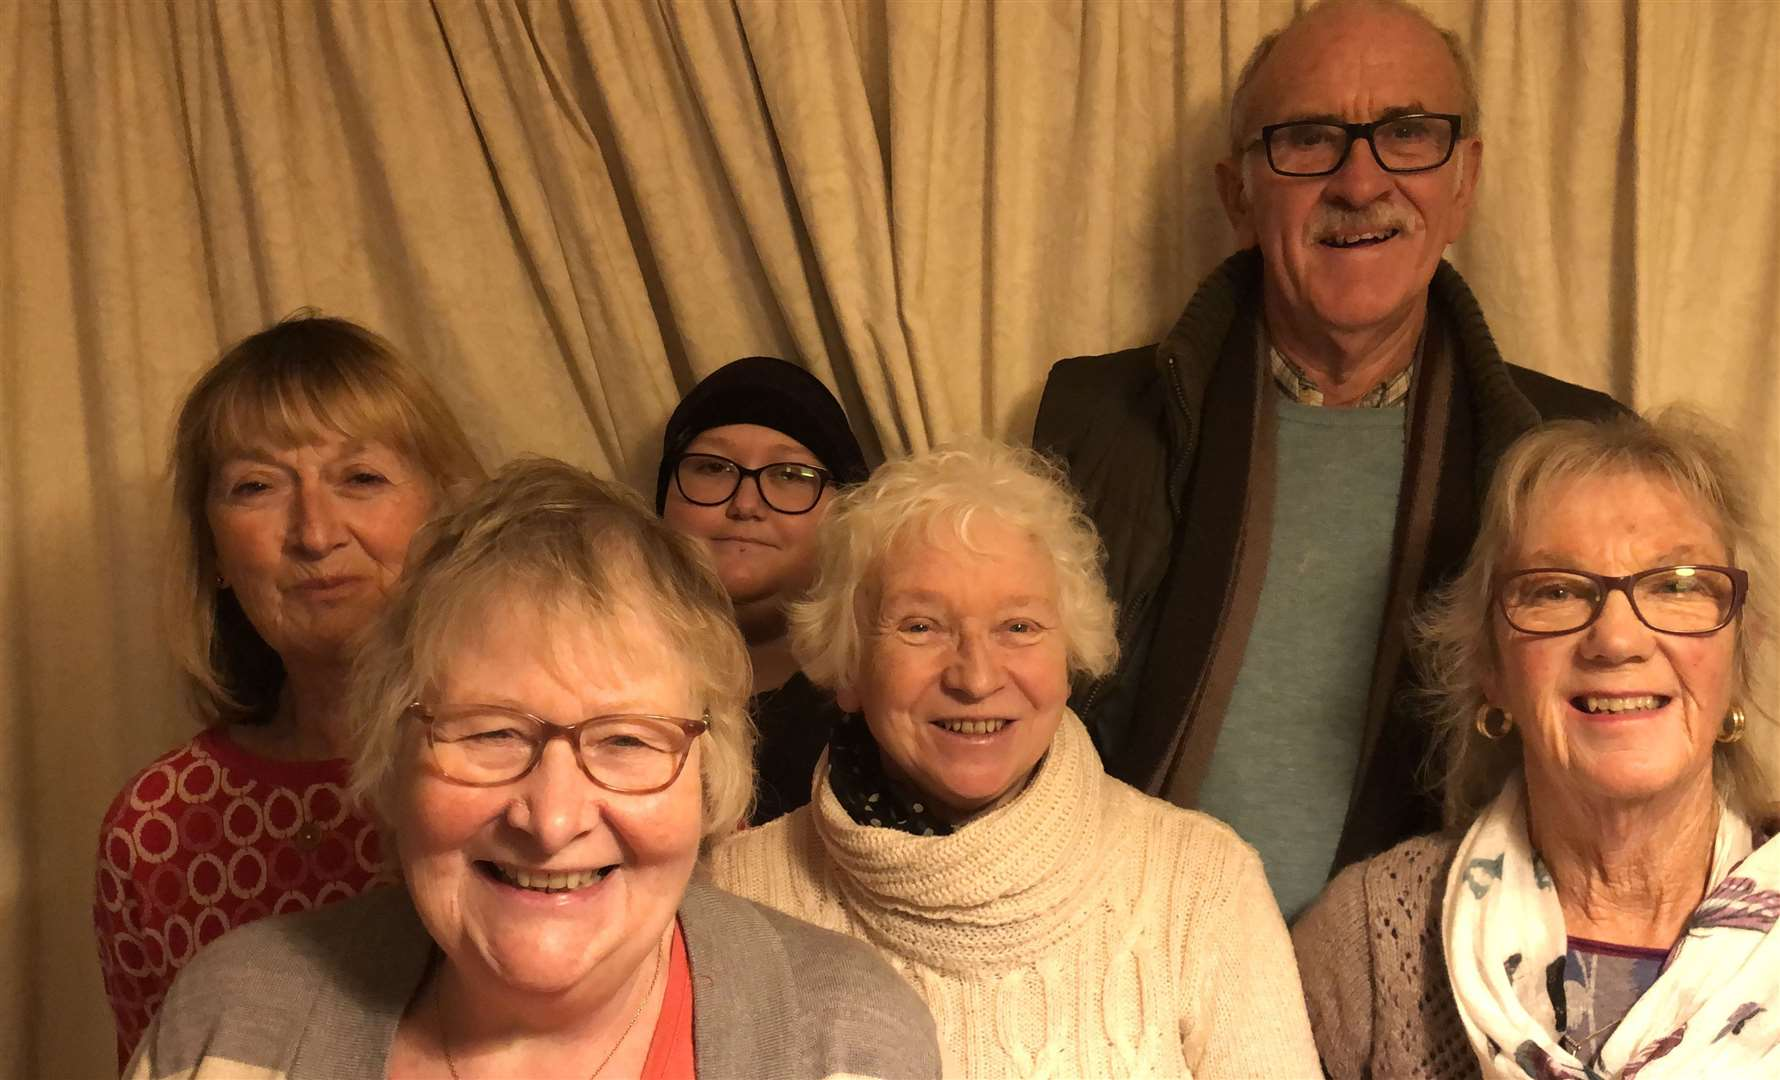 Six of the members of the Parochial Church Council of Graveney